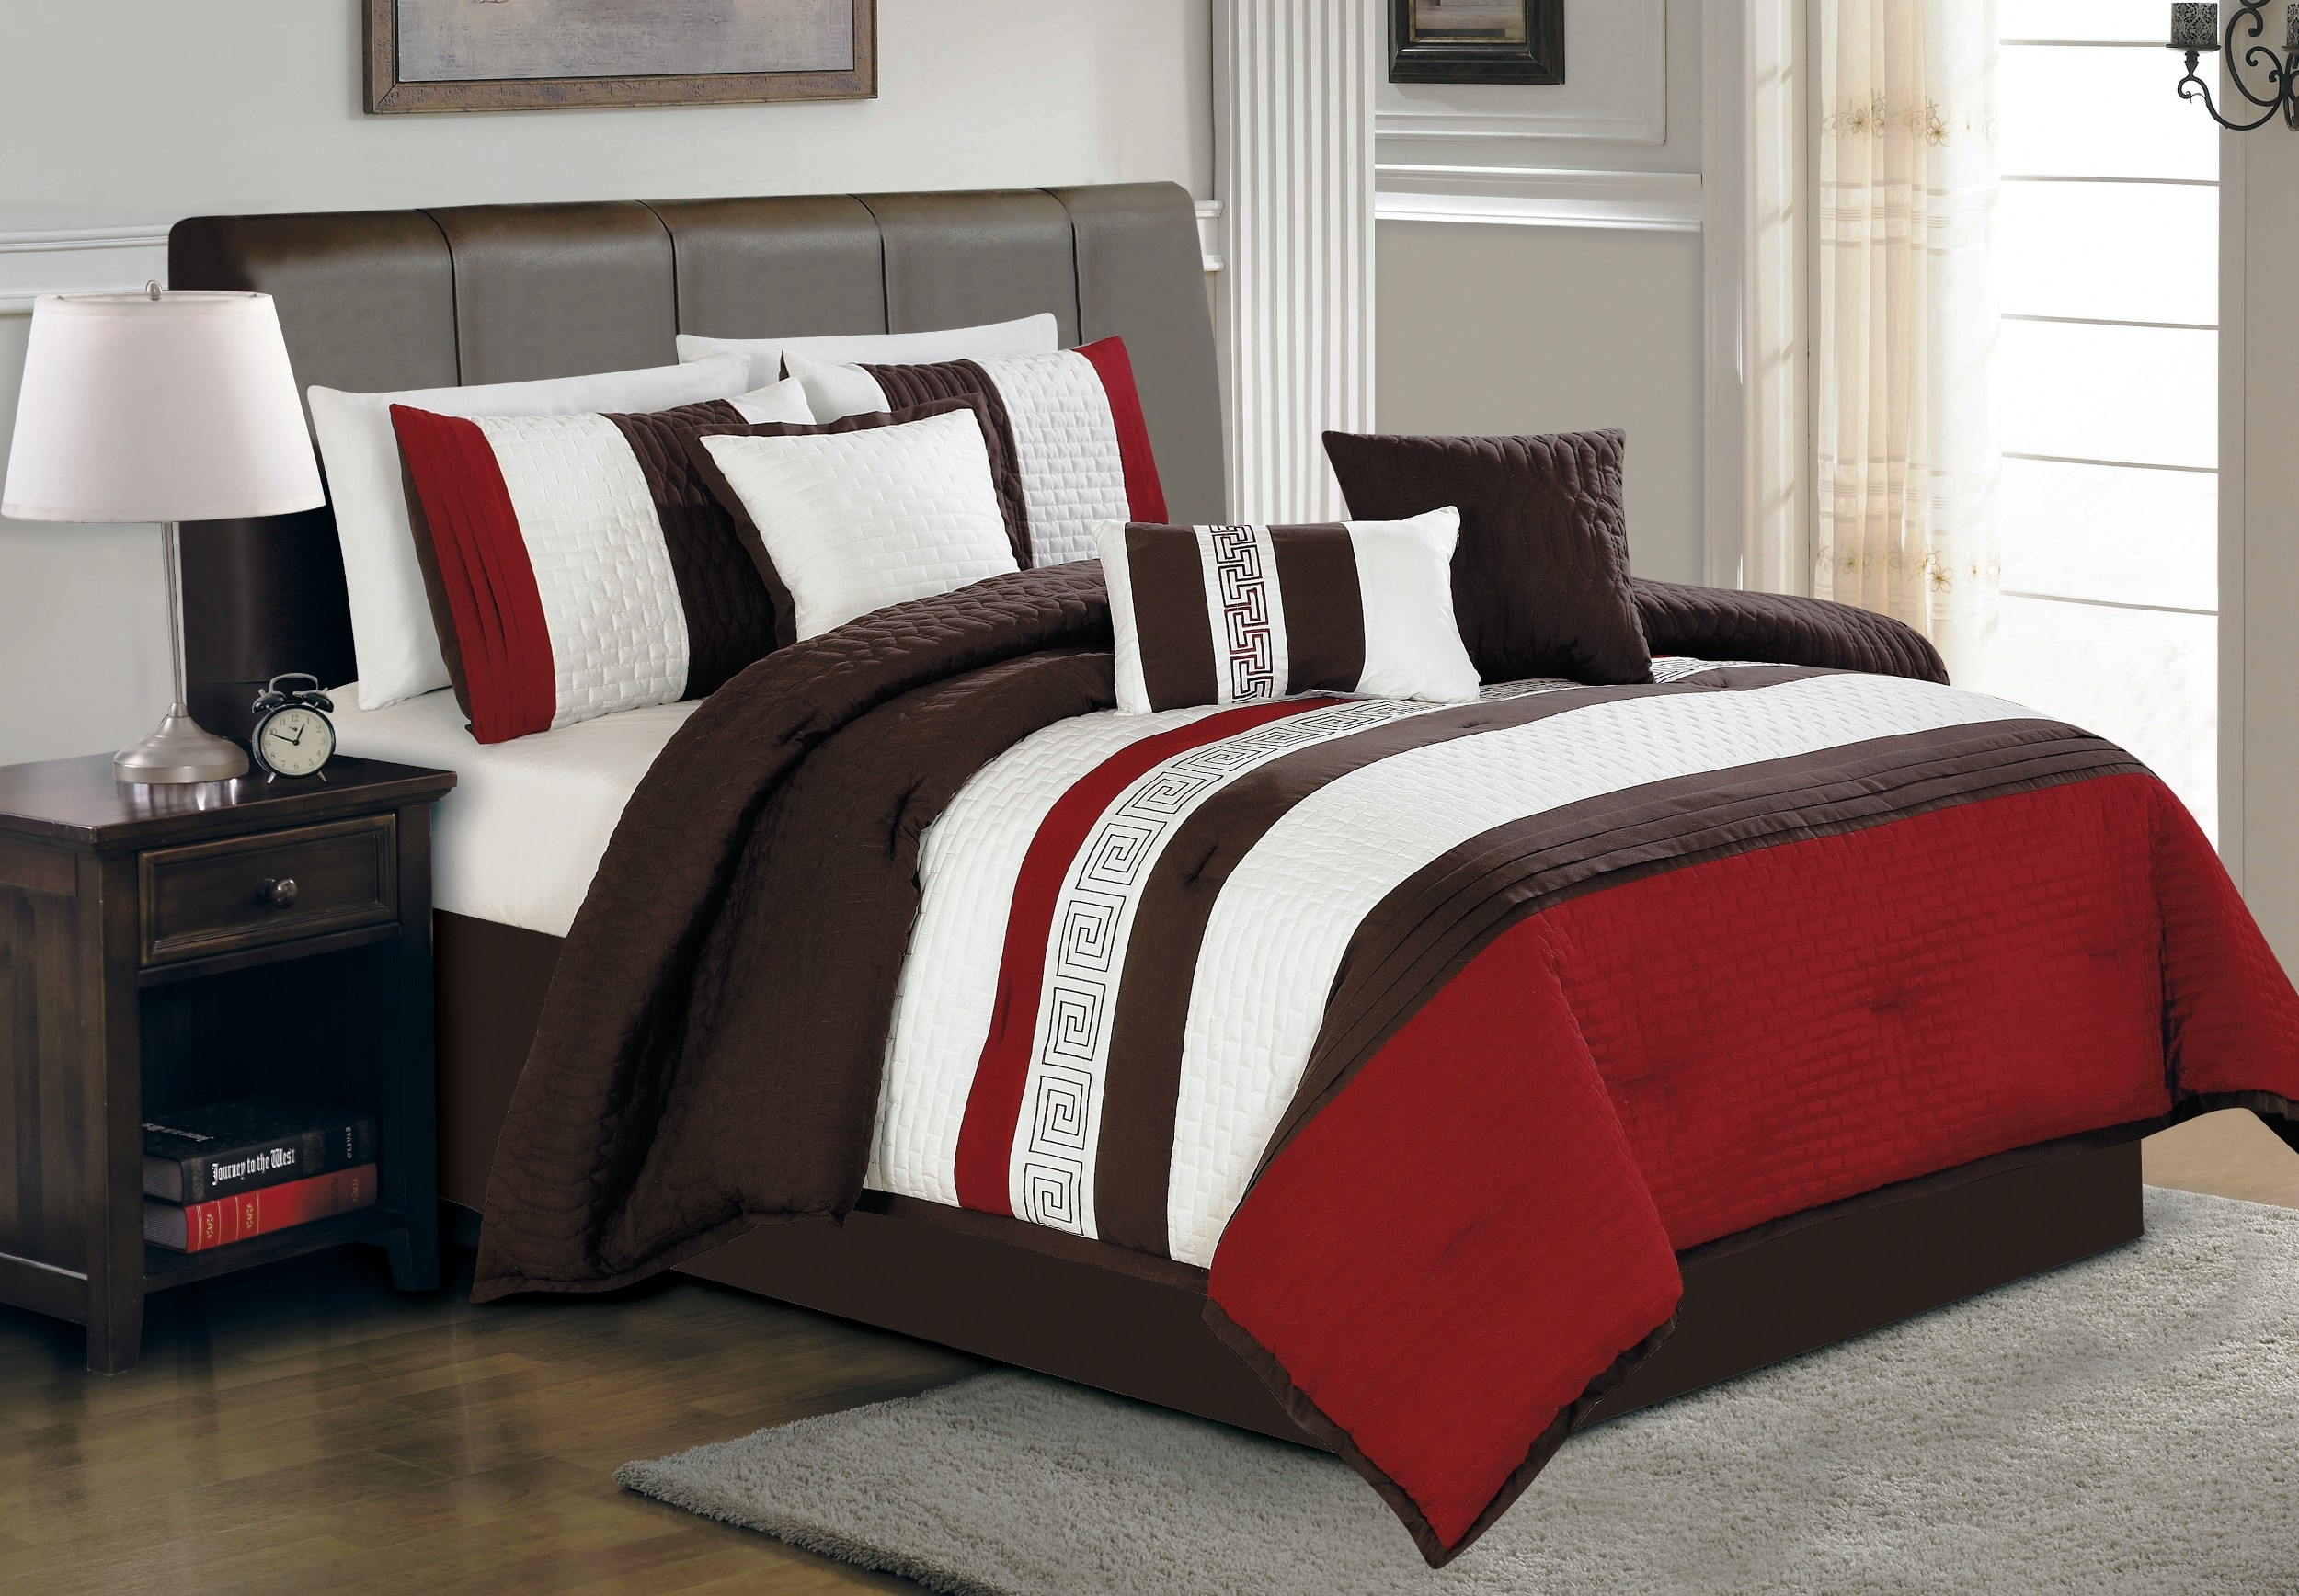 Modern bed sheet design - Colorful Bed Sheet With Brown Bed Frame And Cabinet Hardwood Floor With Grey Rug